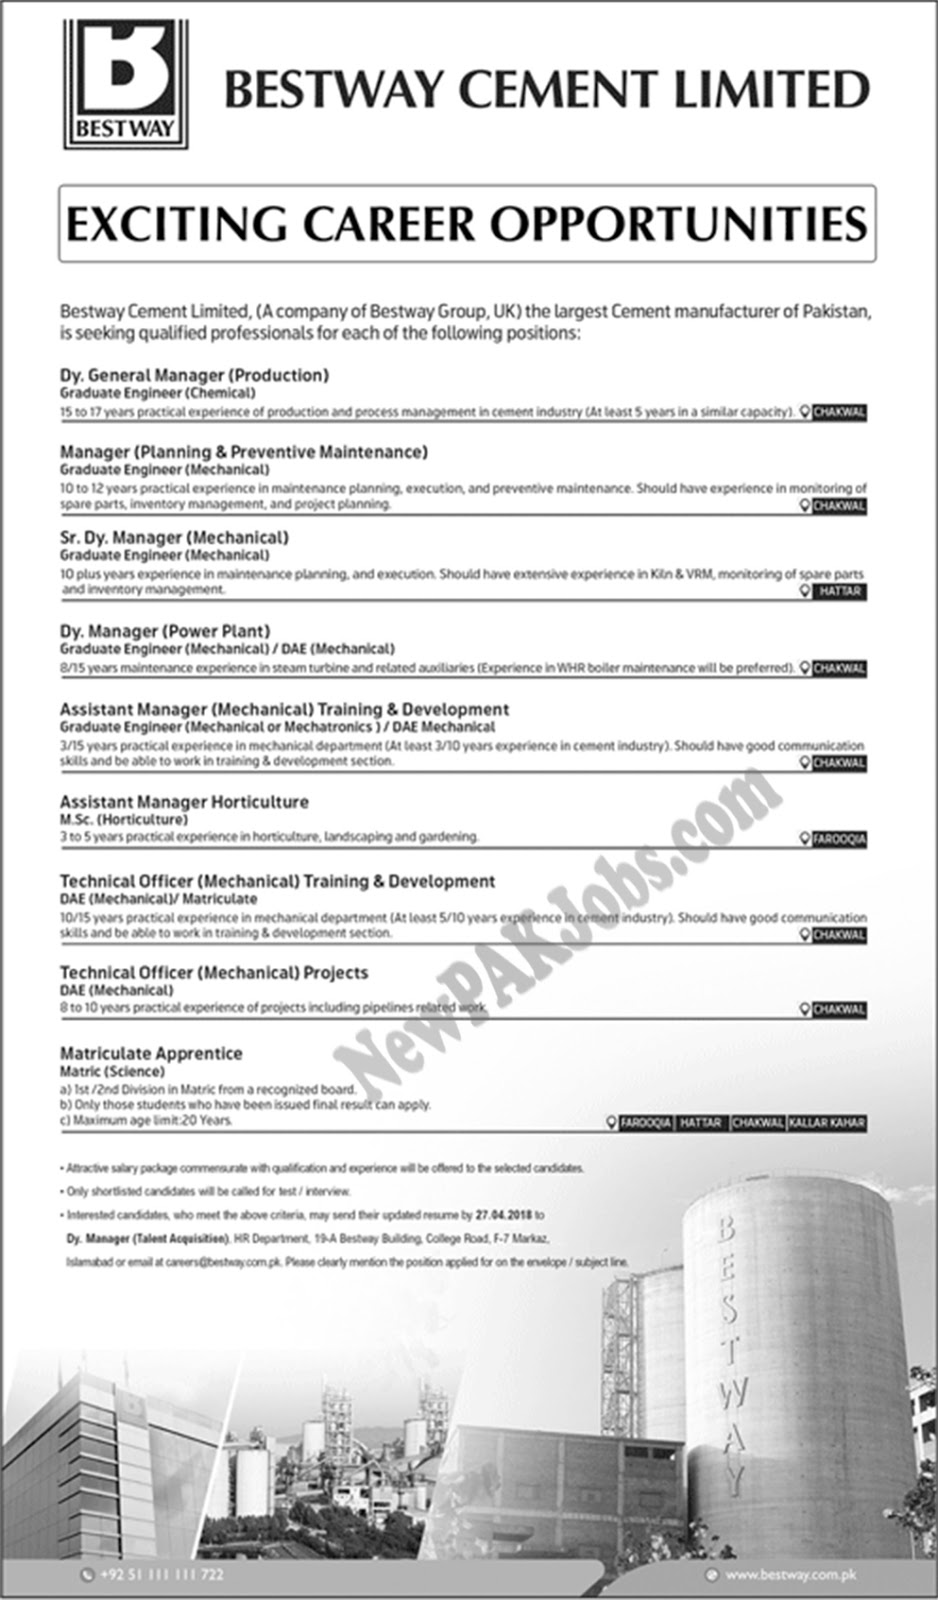 bestway-cement-limited-announec-vacancies-for-chakwal